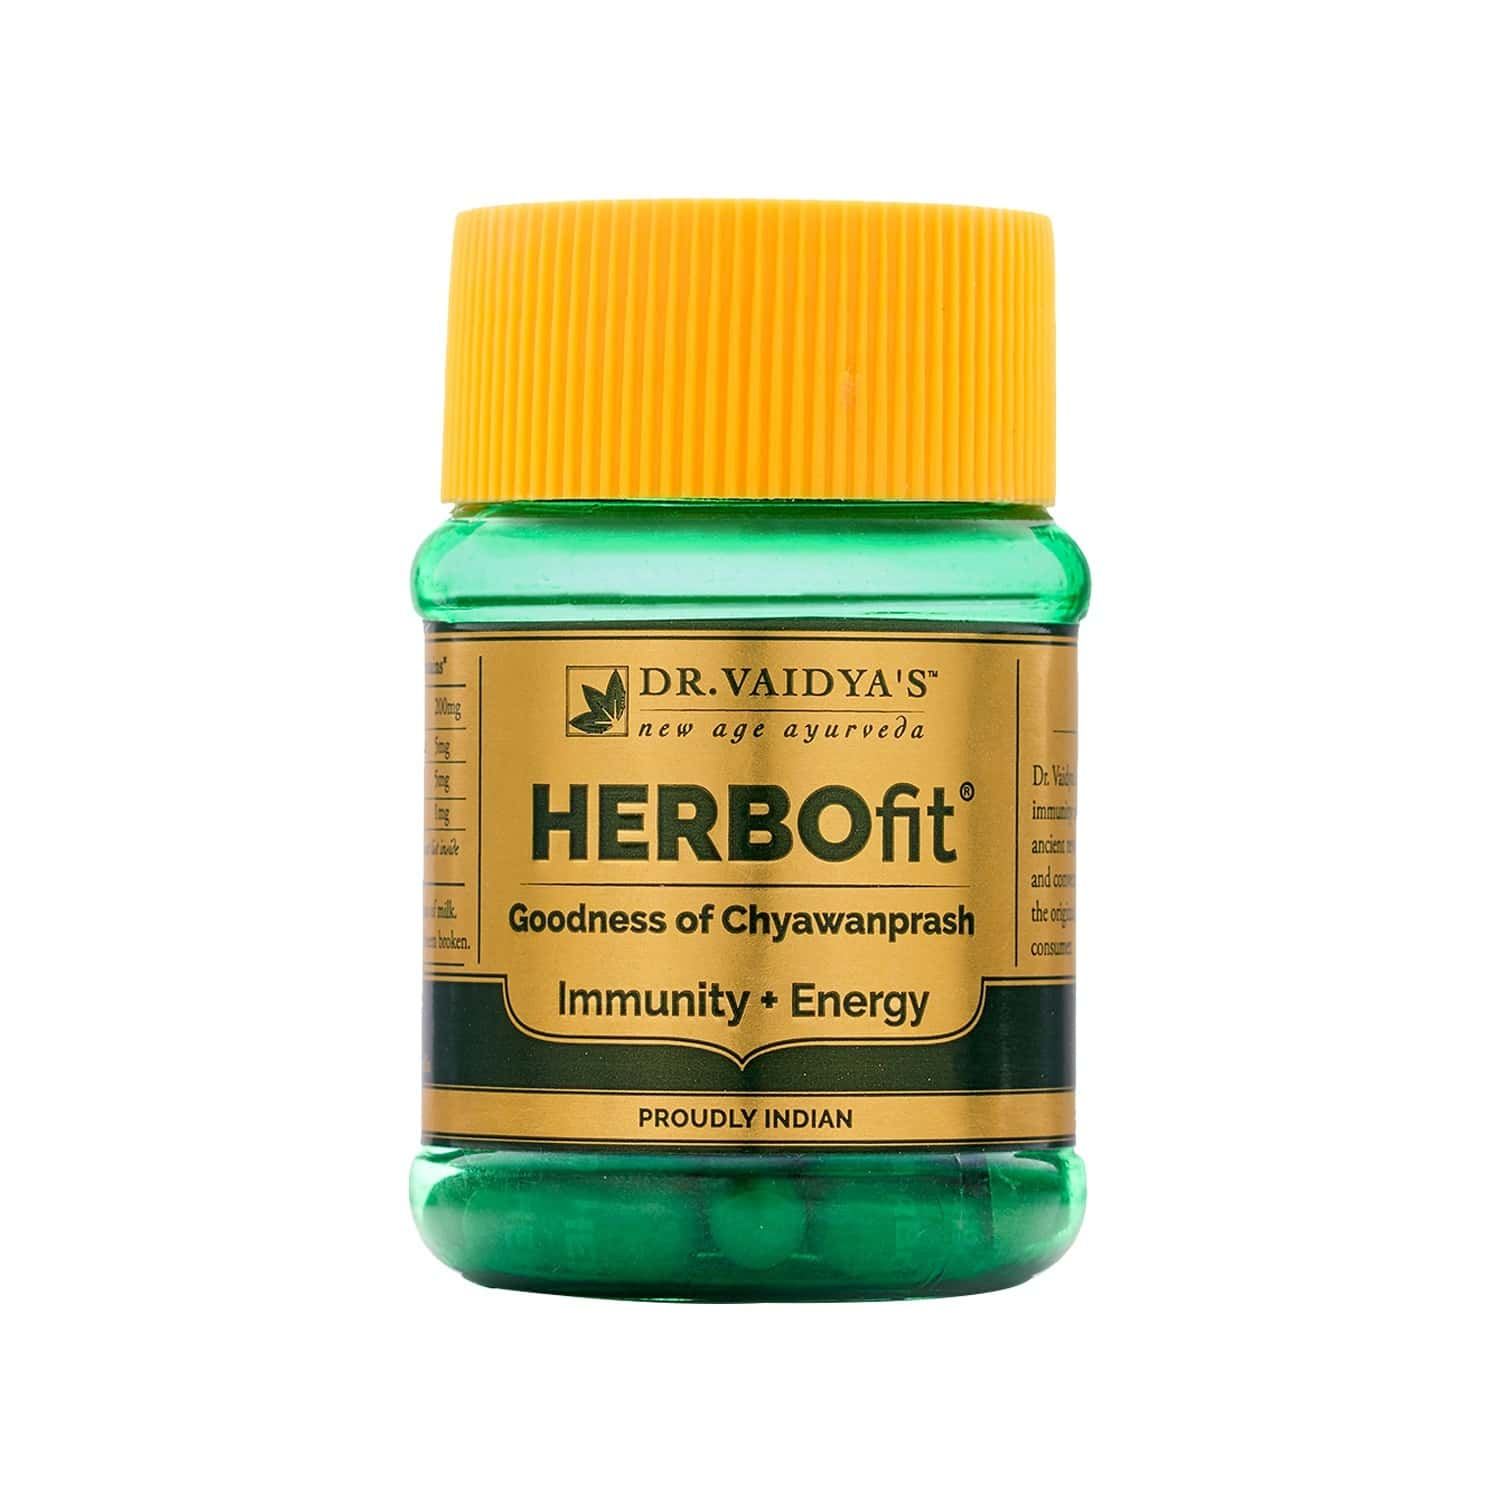 Dr.vaidya's Herbofit   Goodness Of Chywanprash In A Capsule   Boost Immunity & Energy   30 Capsules Each (pack Of 2)